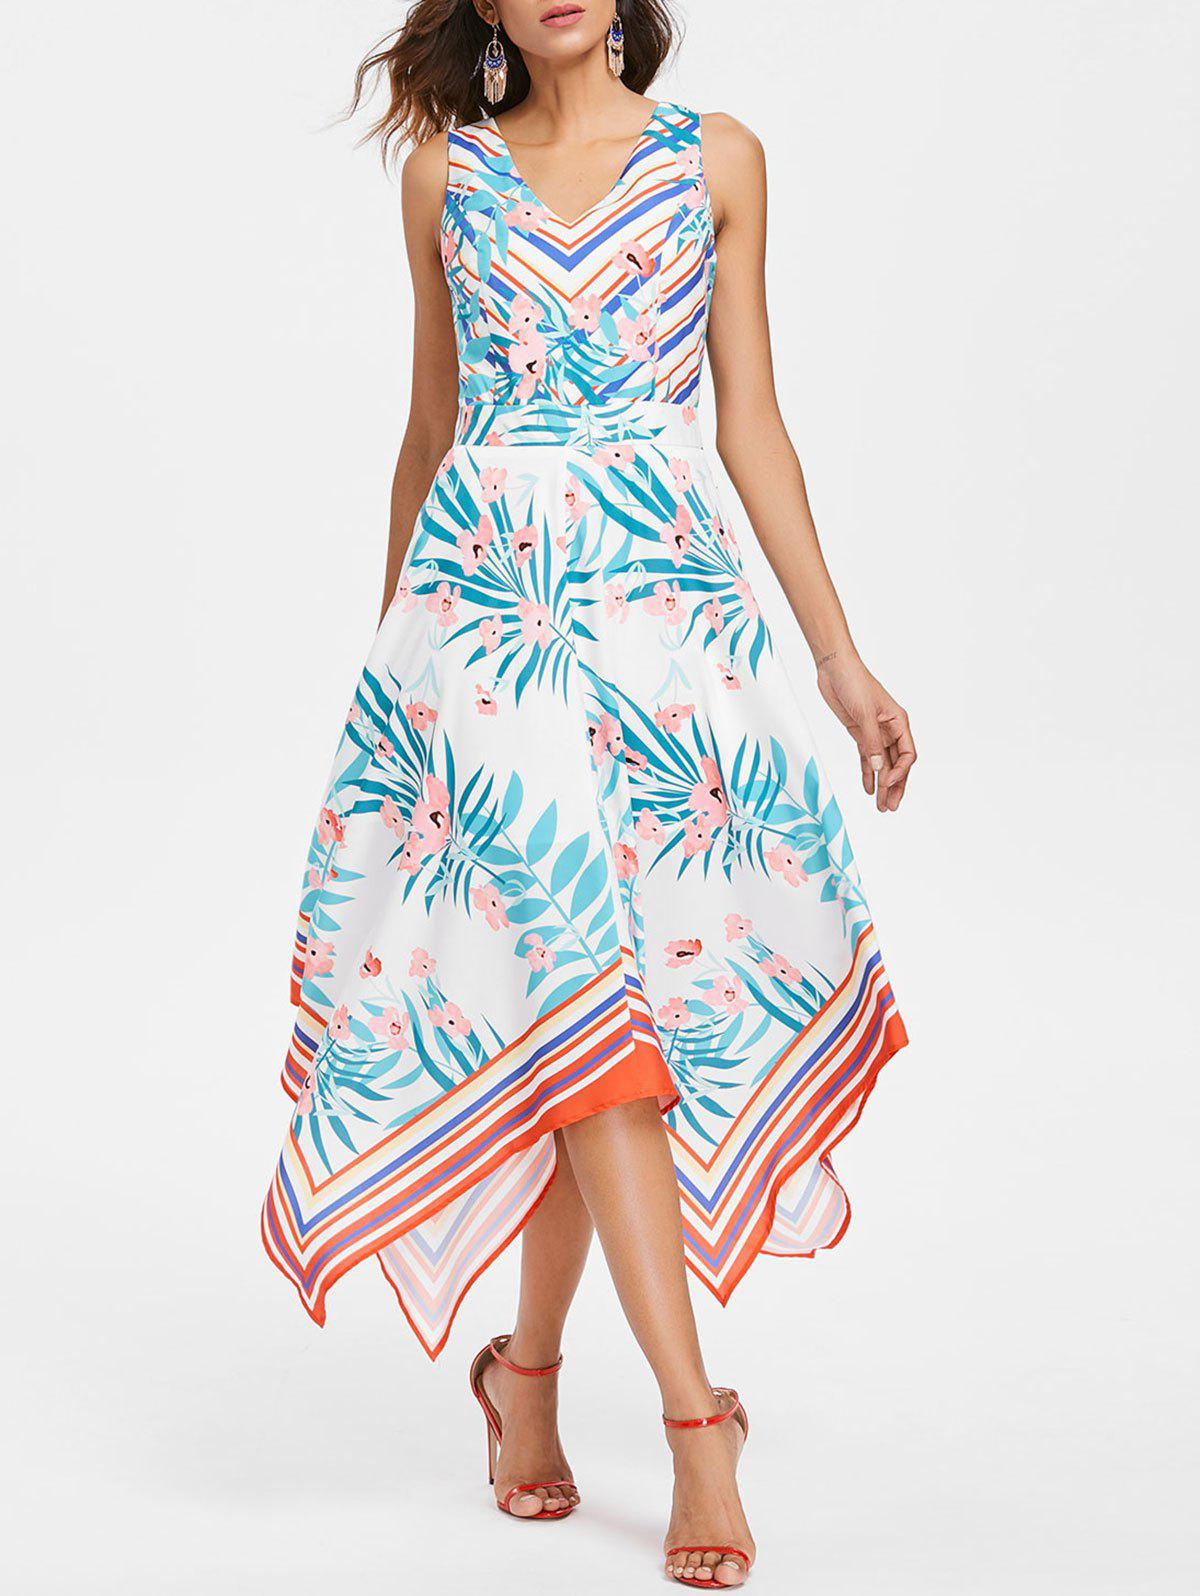 Shop Plant and Stripe Print Handkerchief Dress